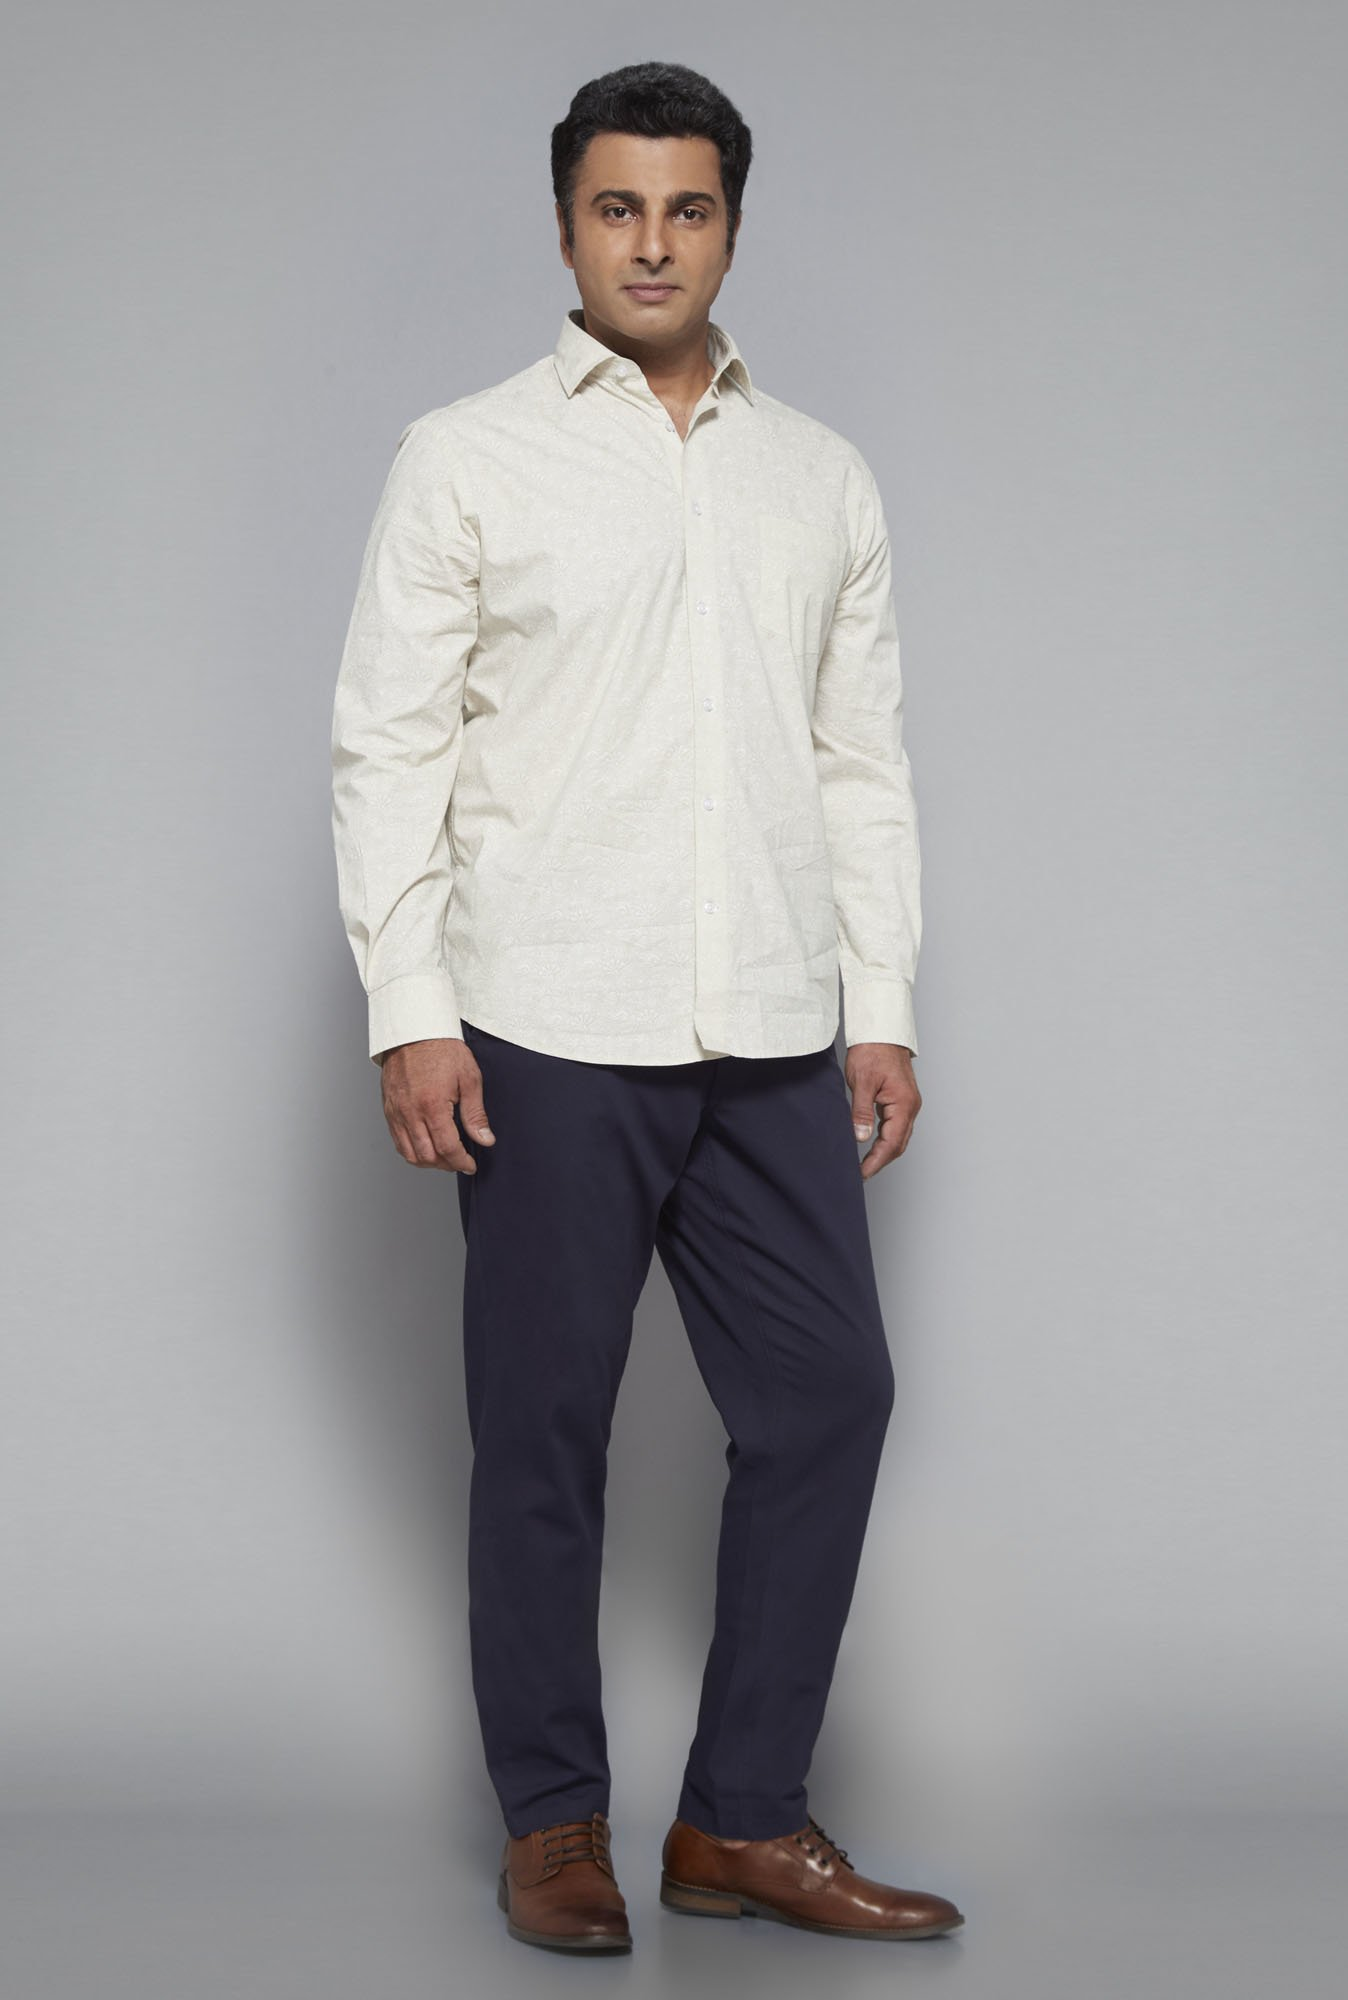 Oak & Keel by Westside Beige Printed Shirt